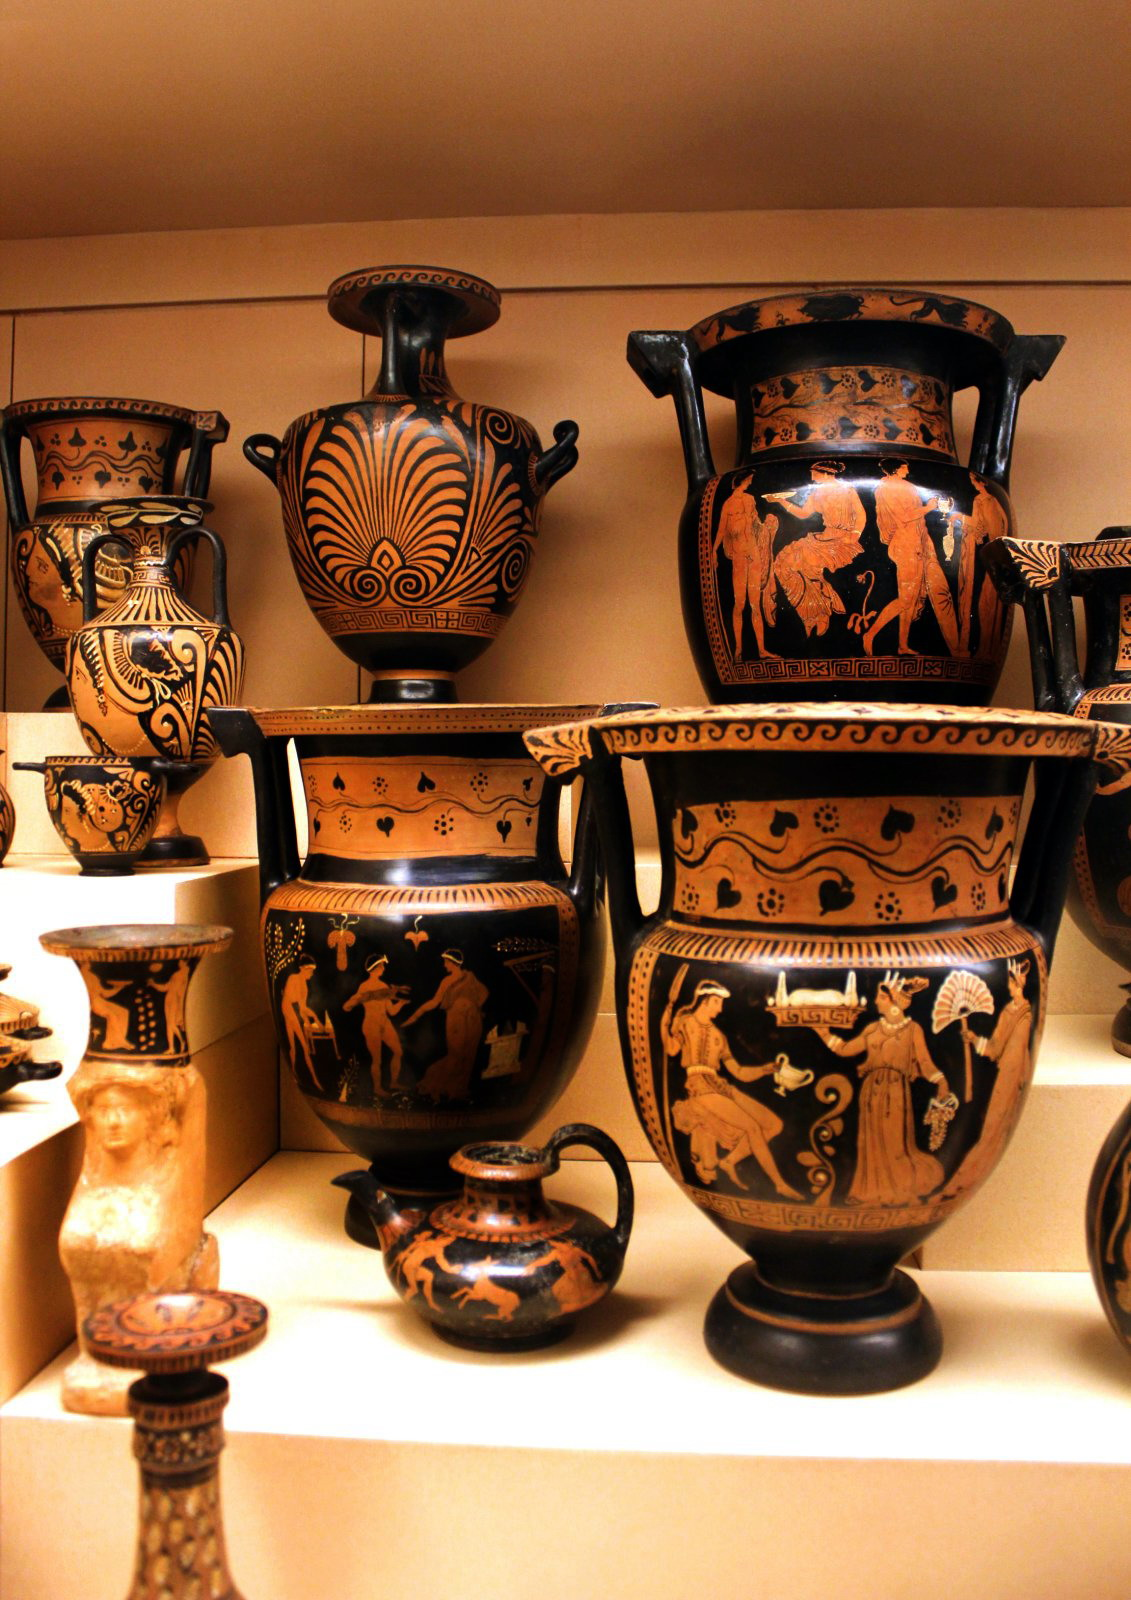 Greek Urns by phlufii on DeviantArt